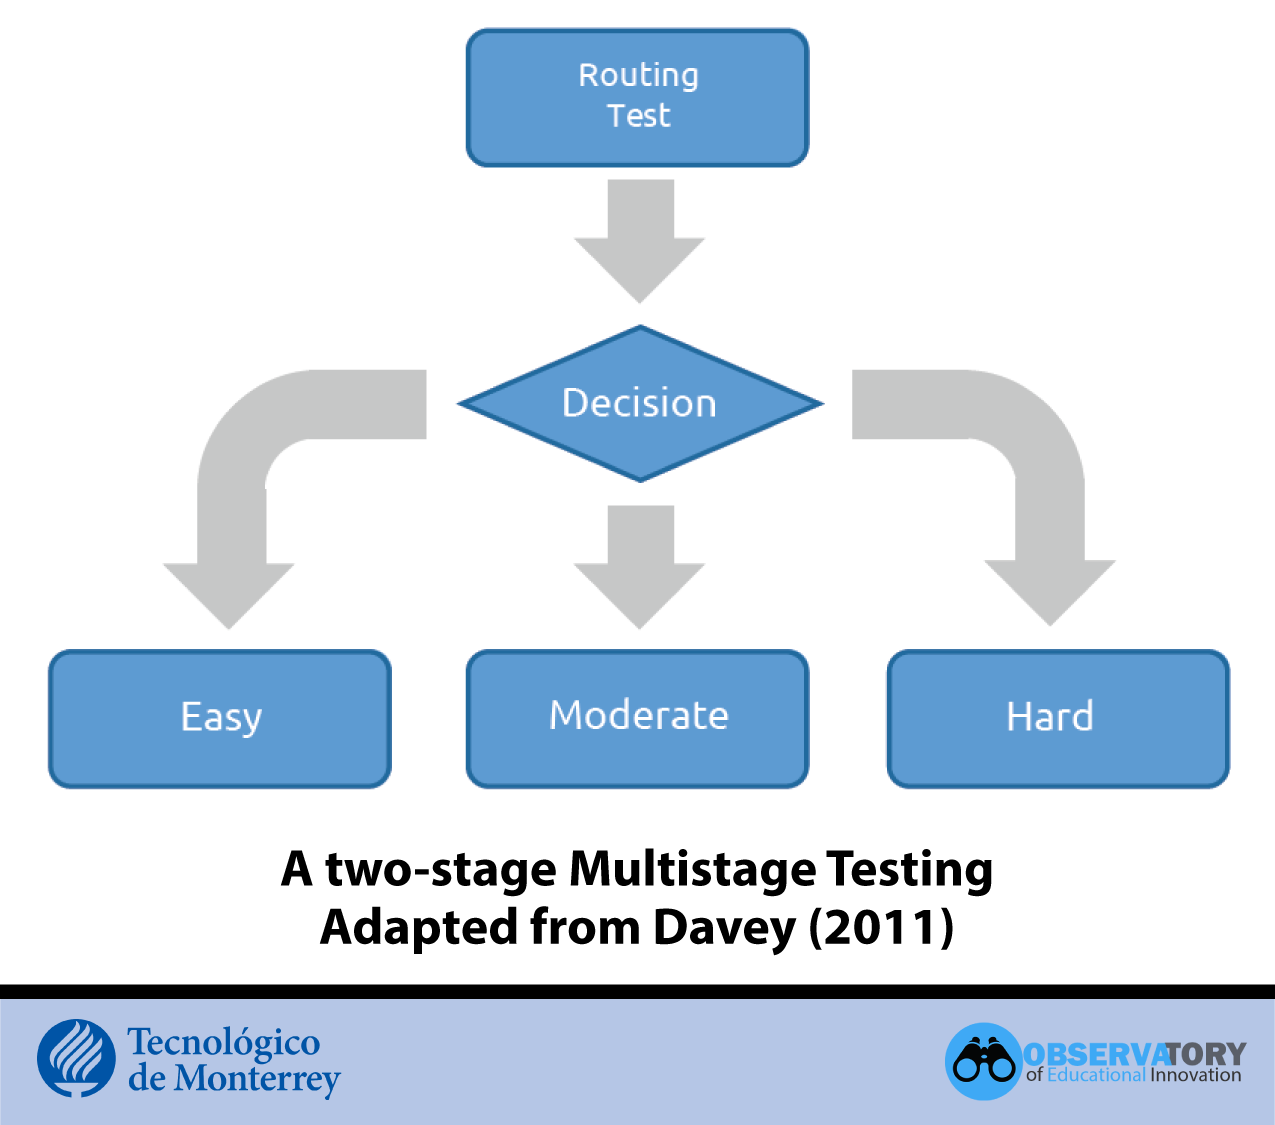 Two-stage multistage testing